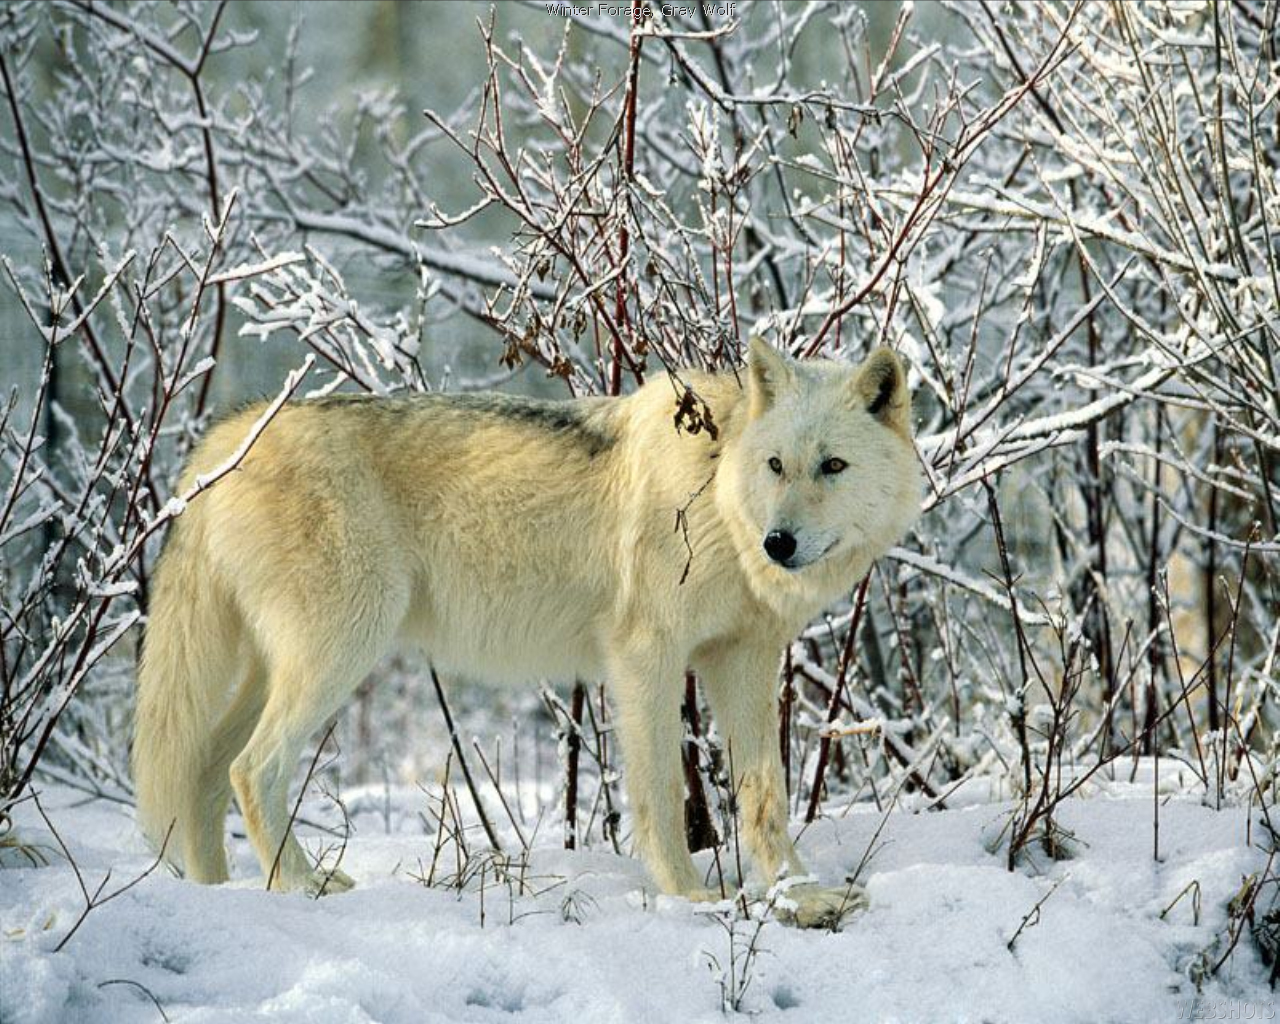 The biggest wolf in the world. Description, habitat and lifestyle of the wolf 37